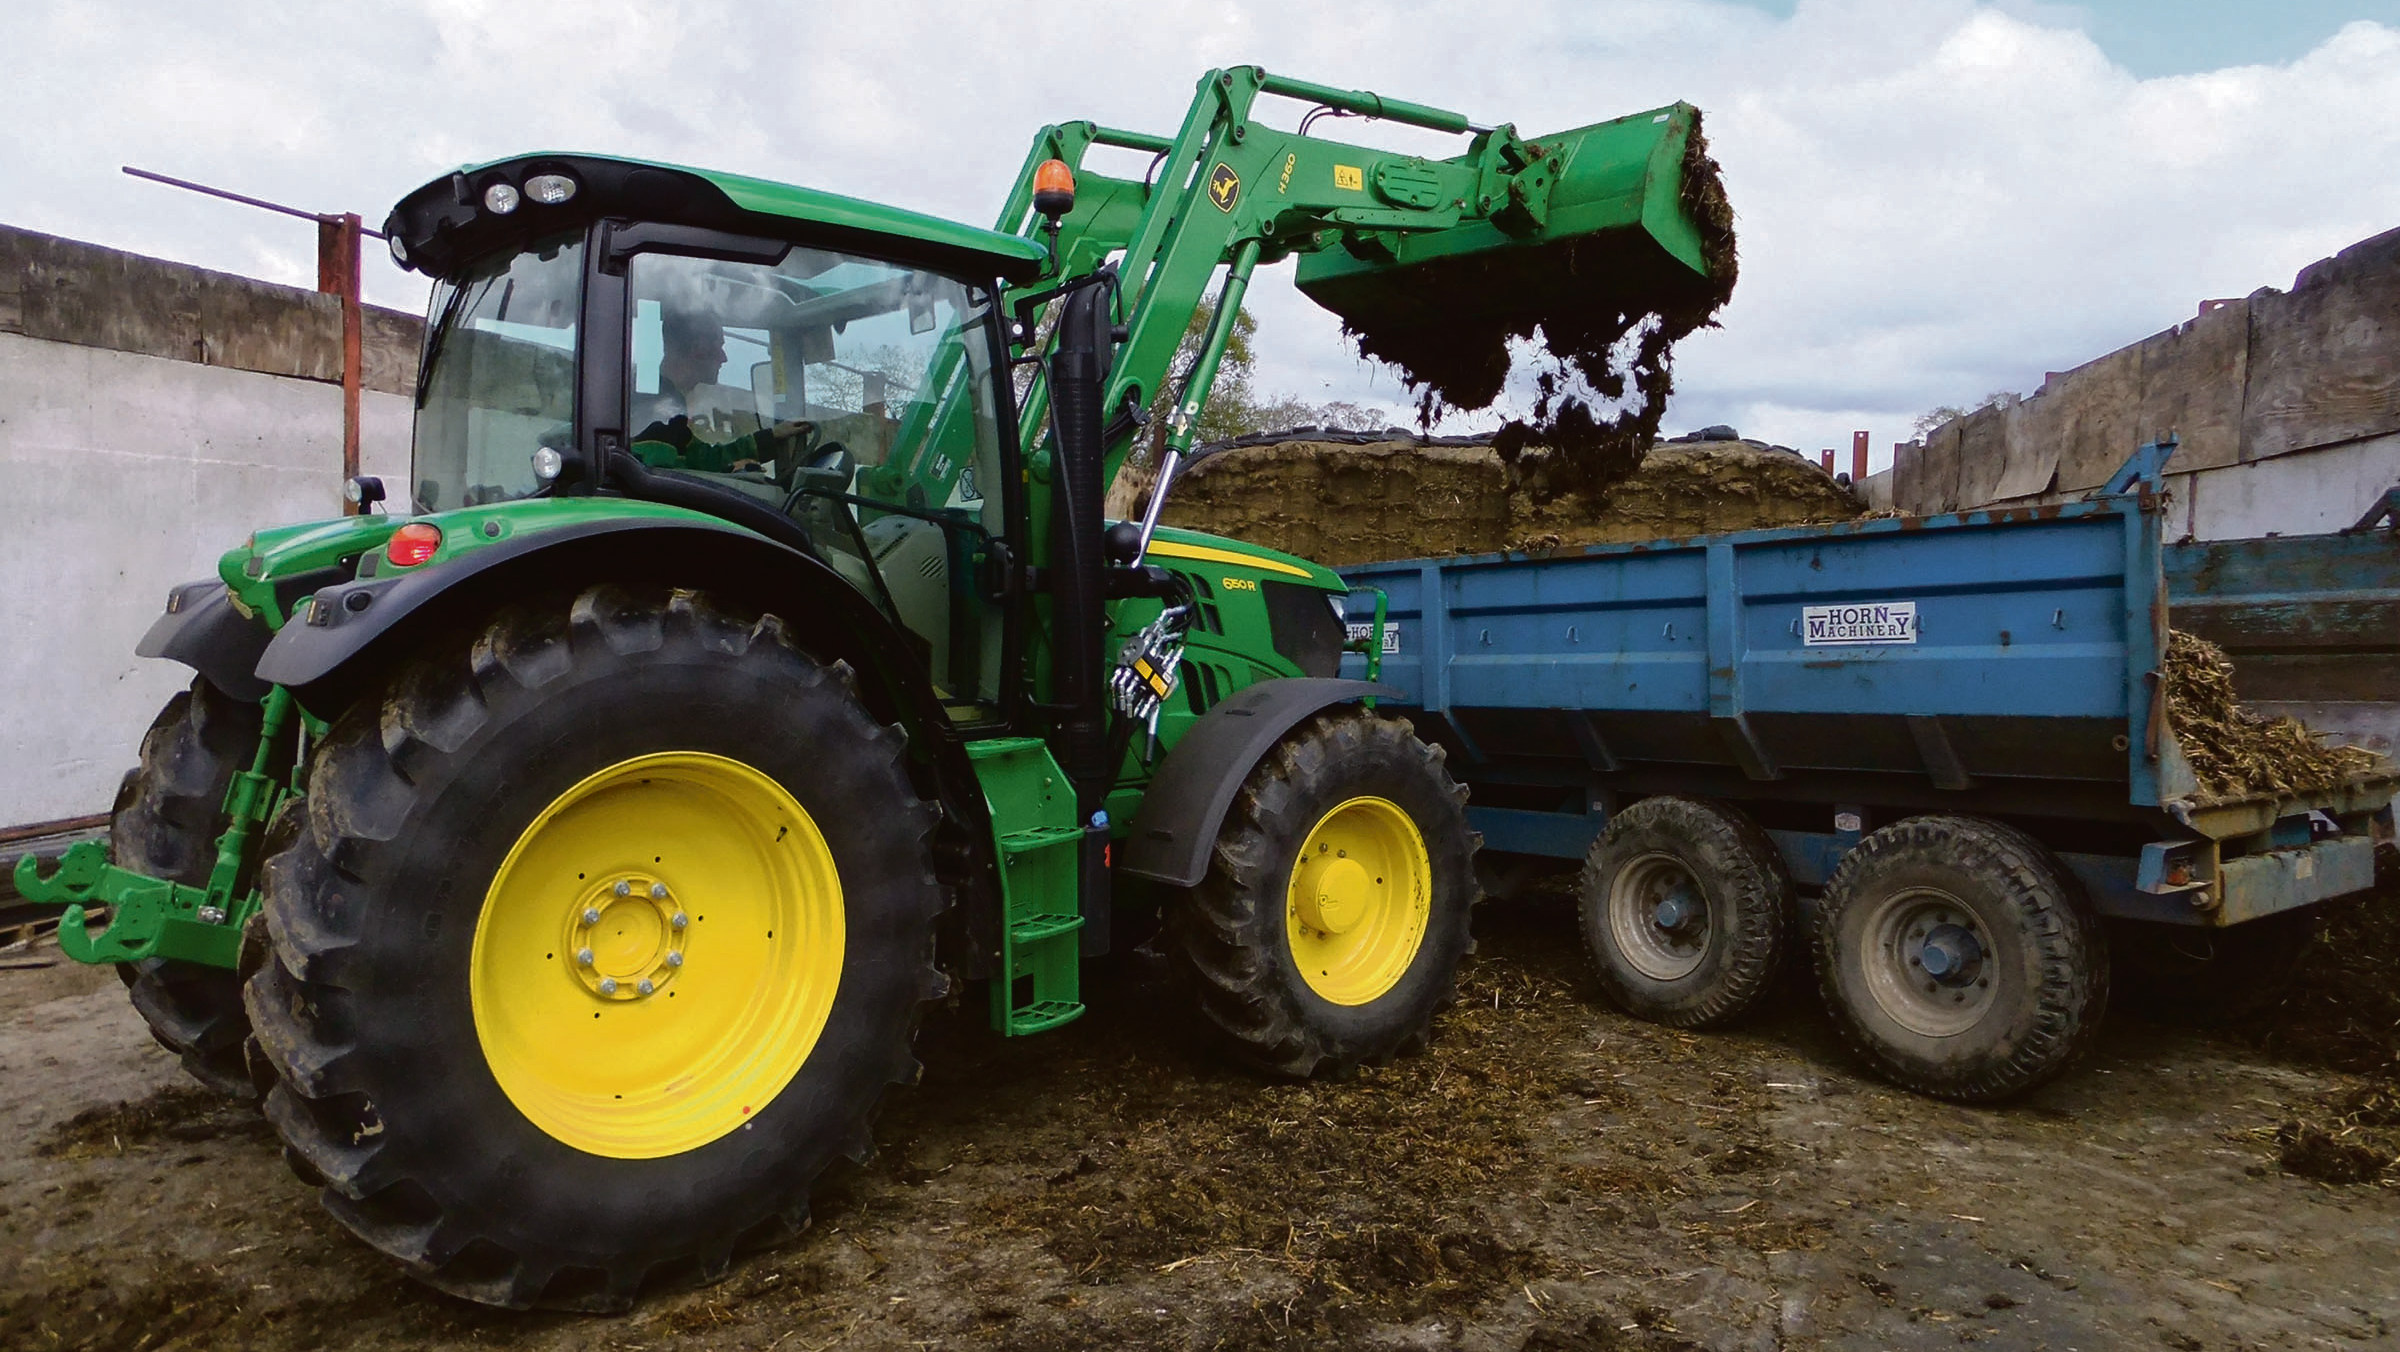 On test: John Deere's latest loader innovation